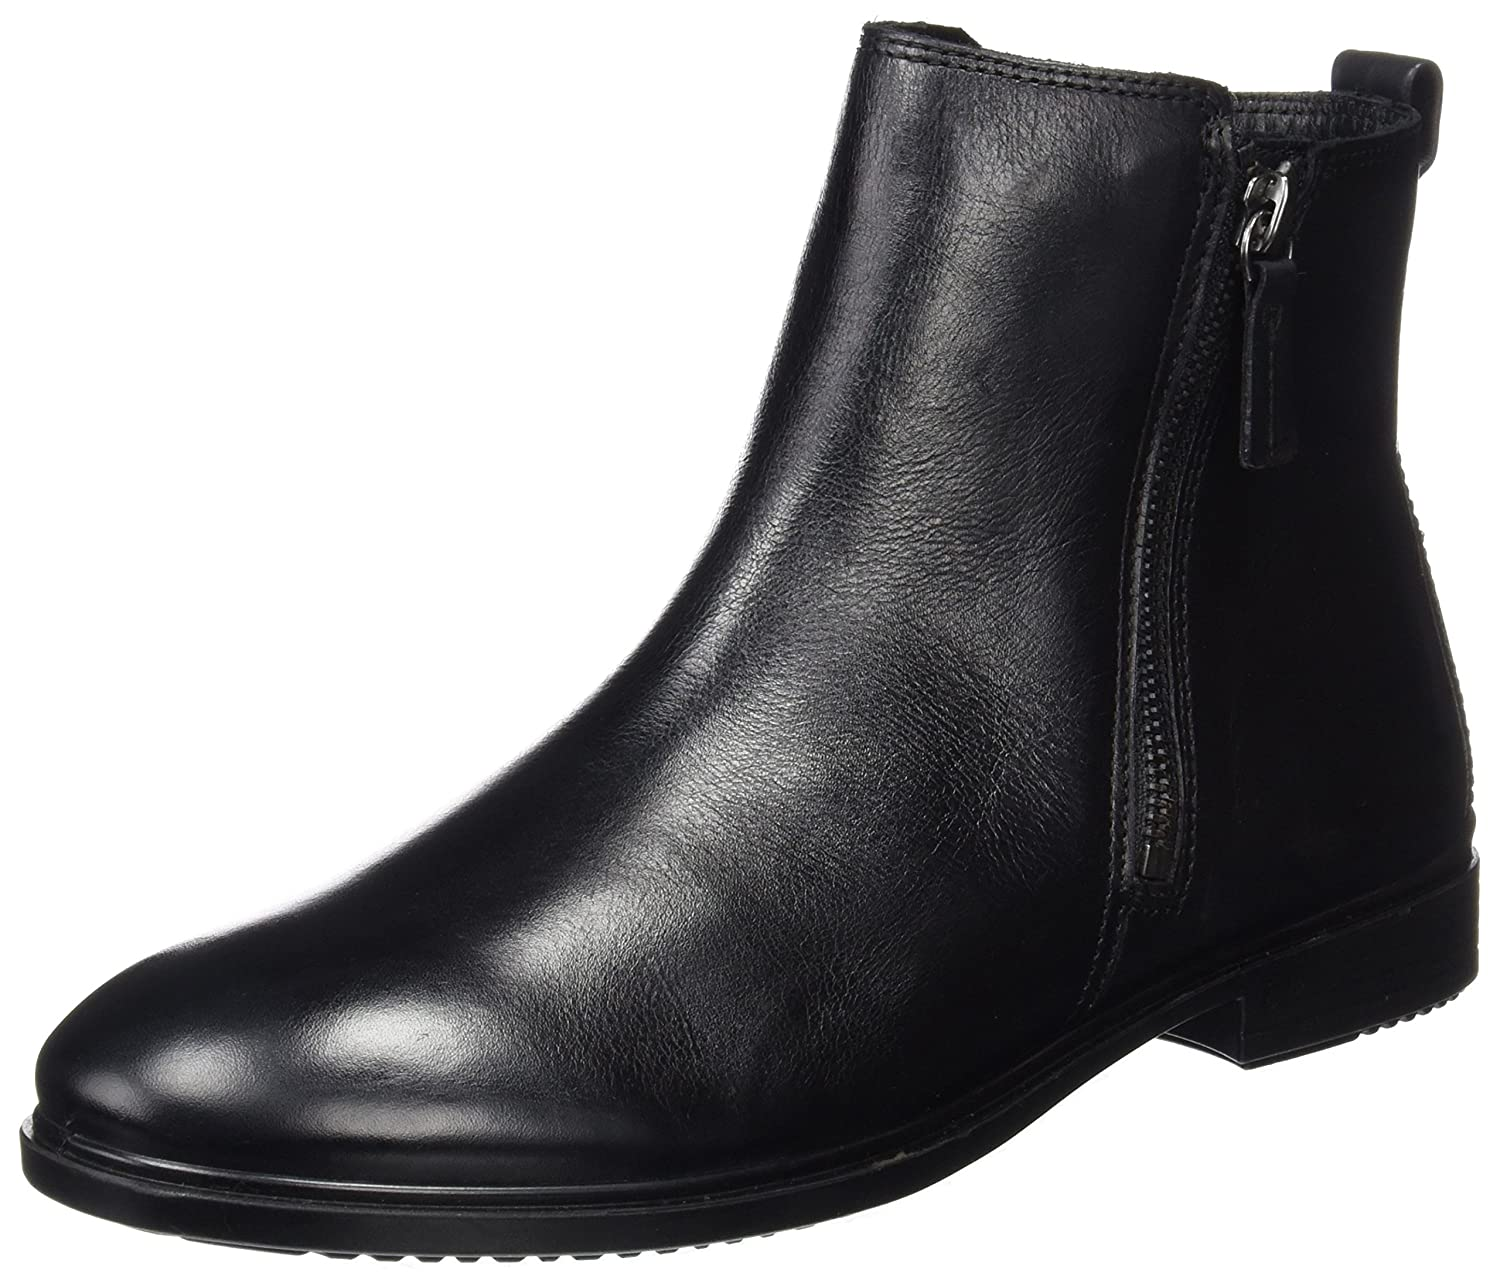 ECCO Shoes Women's Touch 15 B Fashion Boots 26170301001